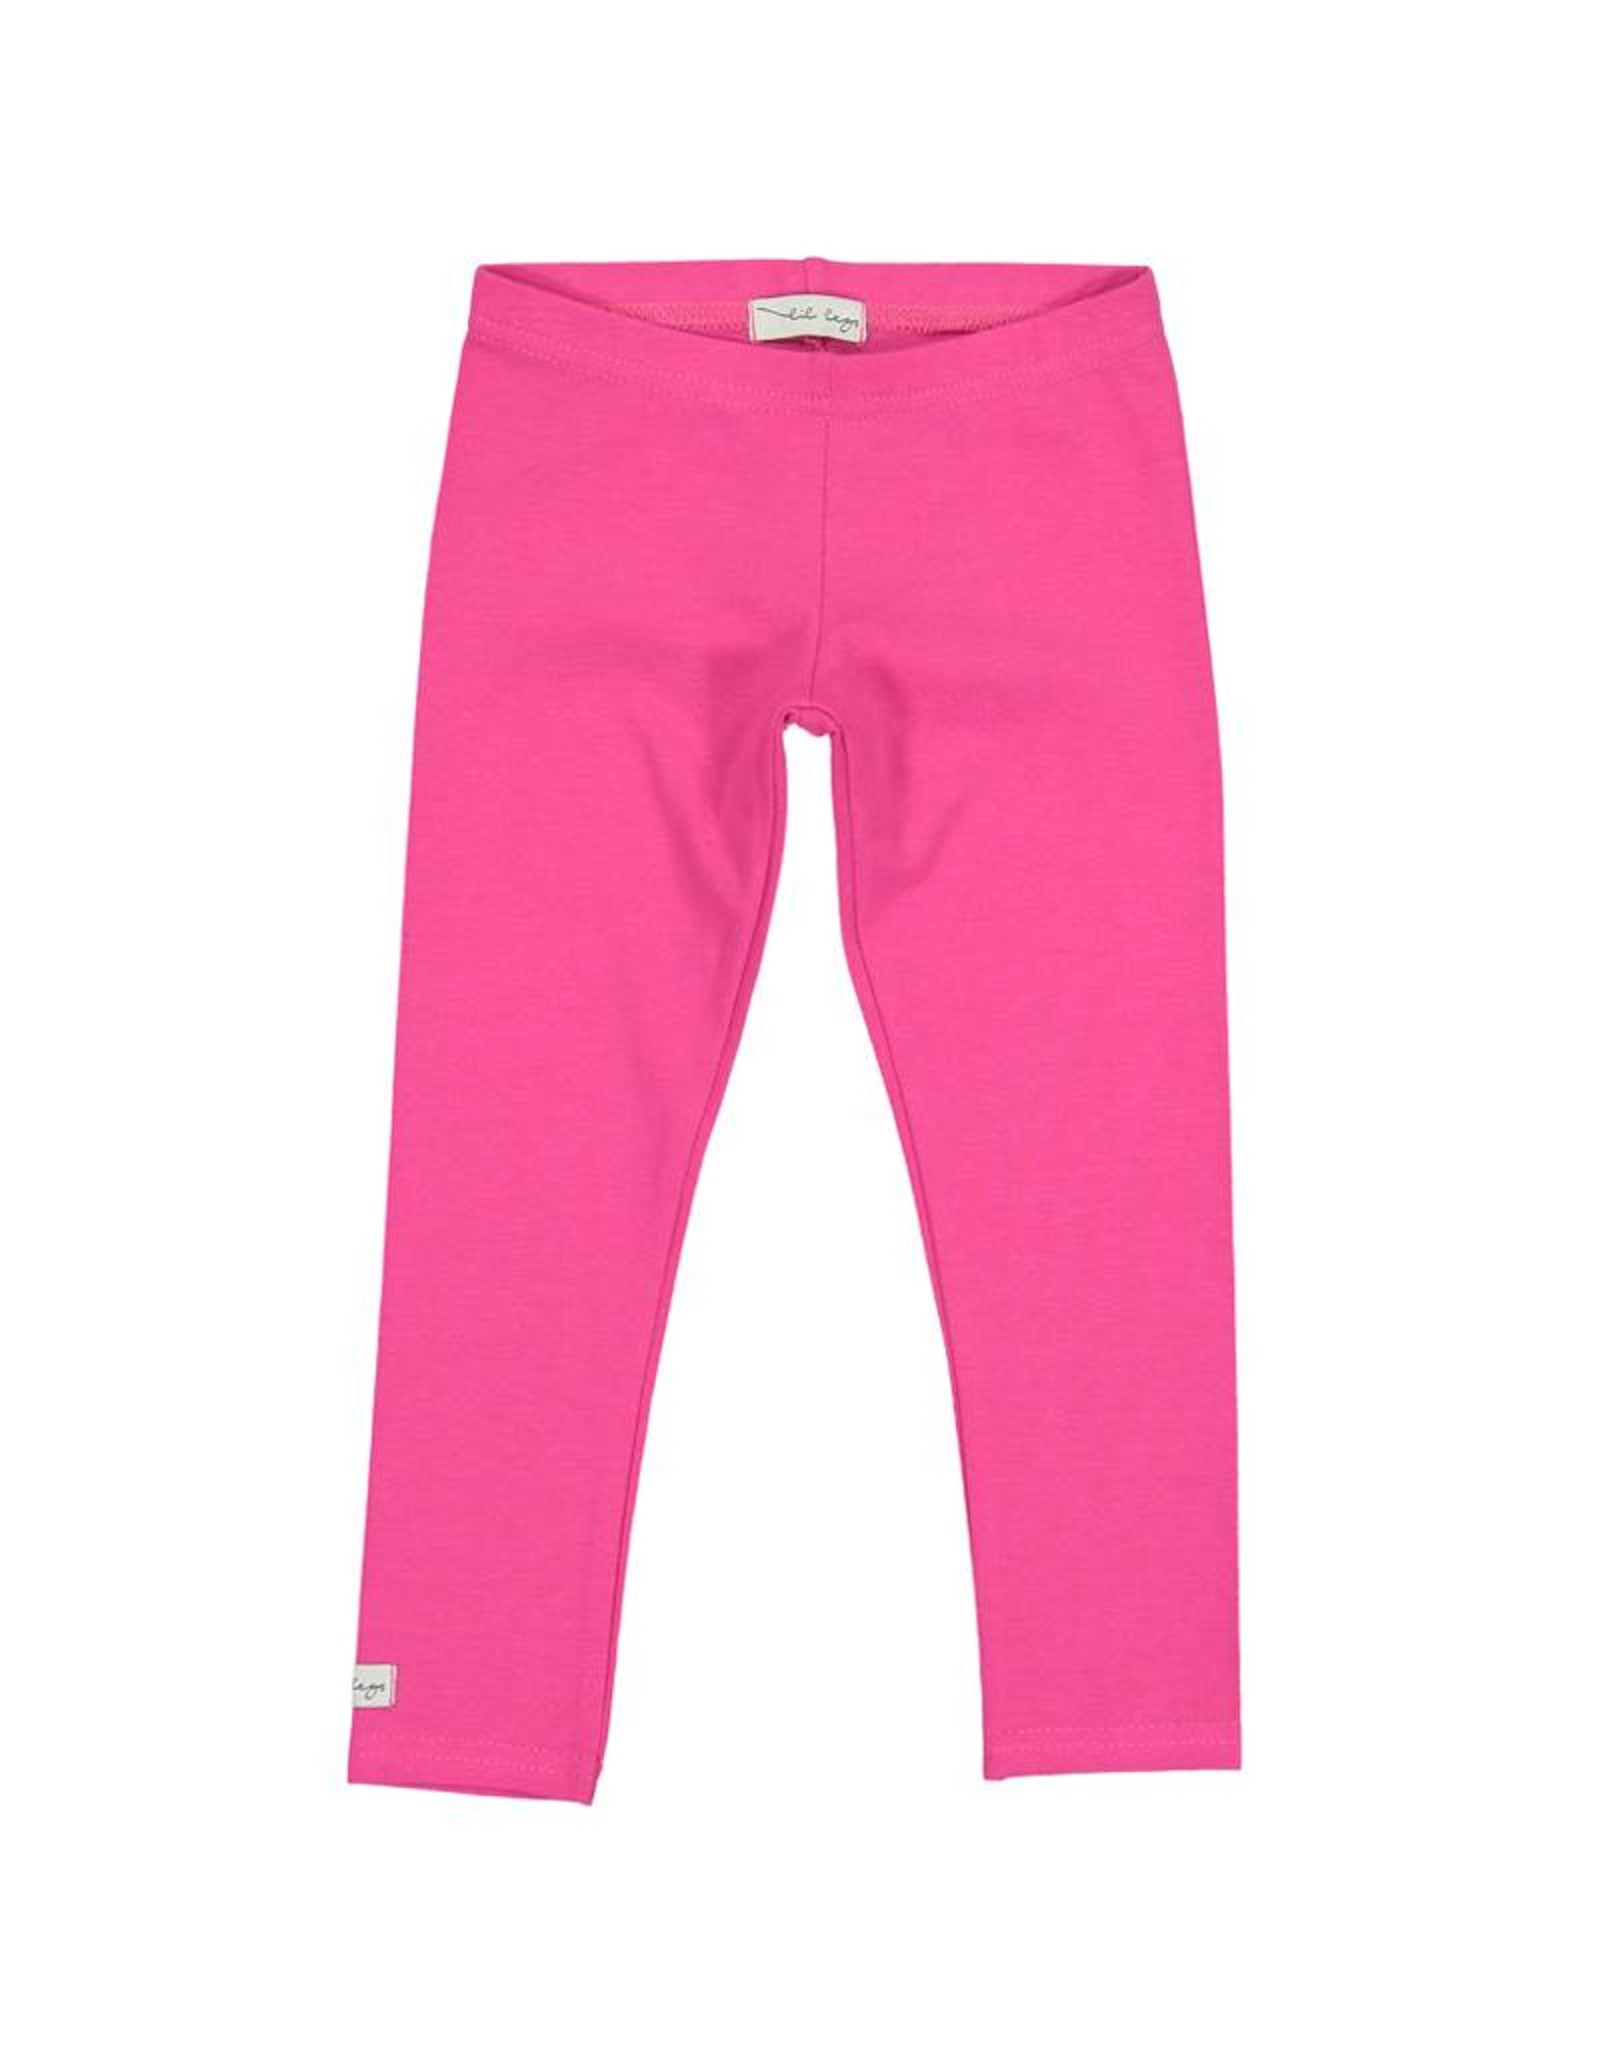 LIL LEGS Spring/Summer Cotton Leggings Fashion Colors